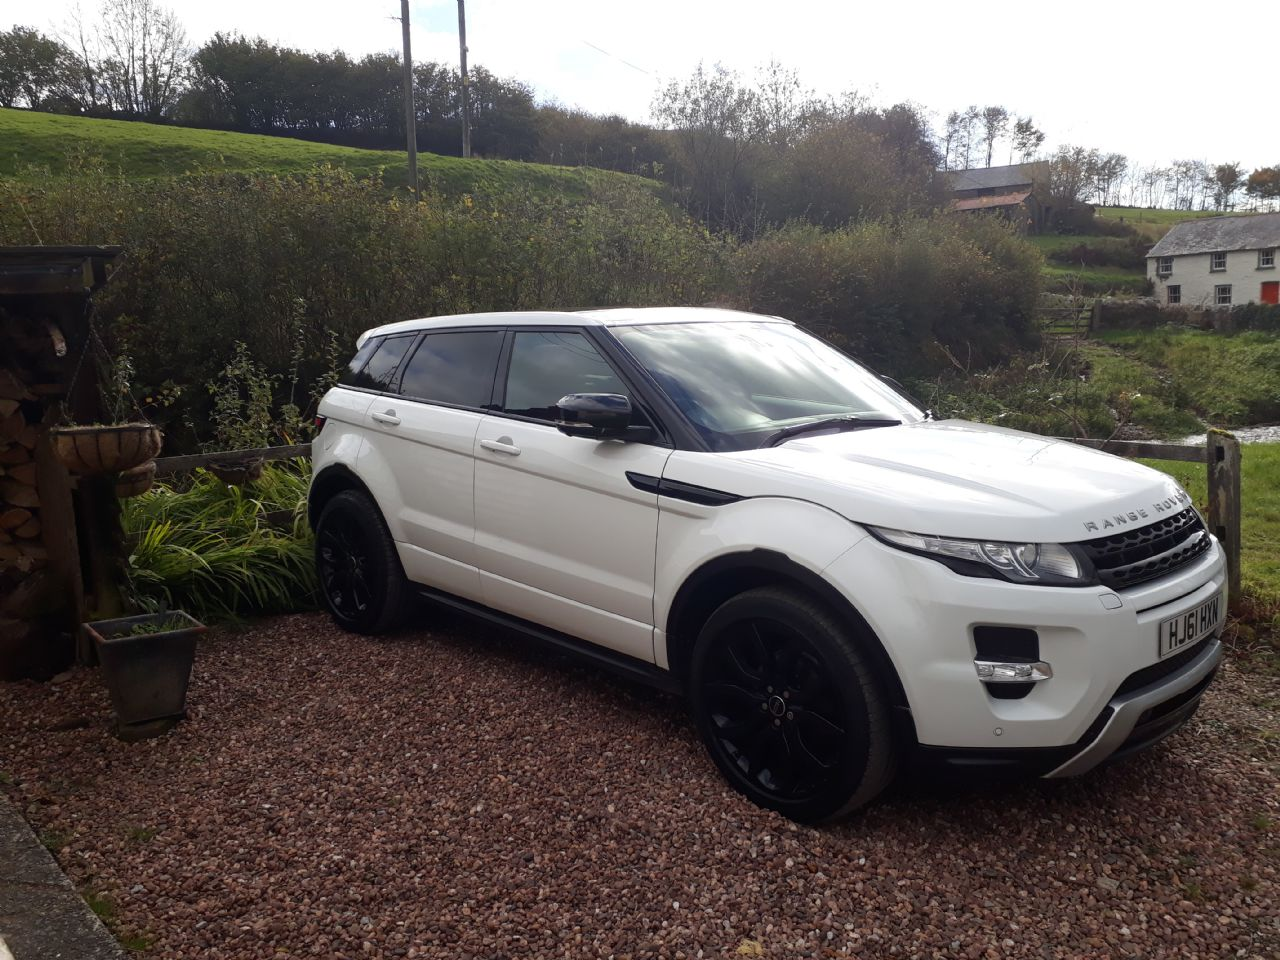 LAND ROVER RANGE ROVER EVOQUE SD4 190HP Auto 4WD dynamic \lux pack - Picture 2